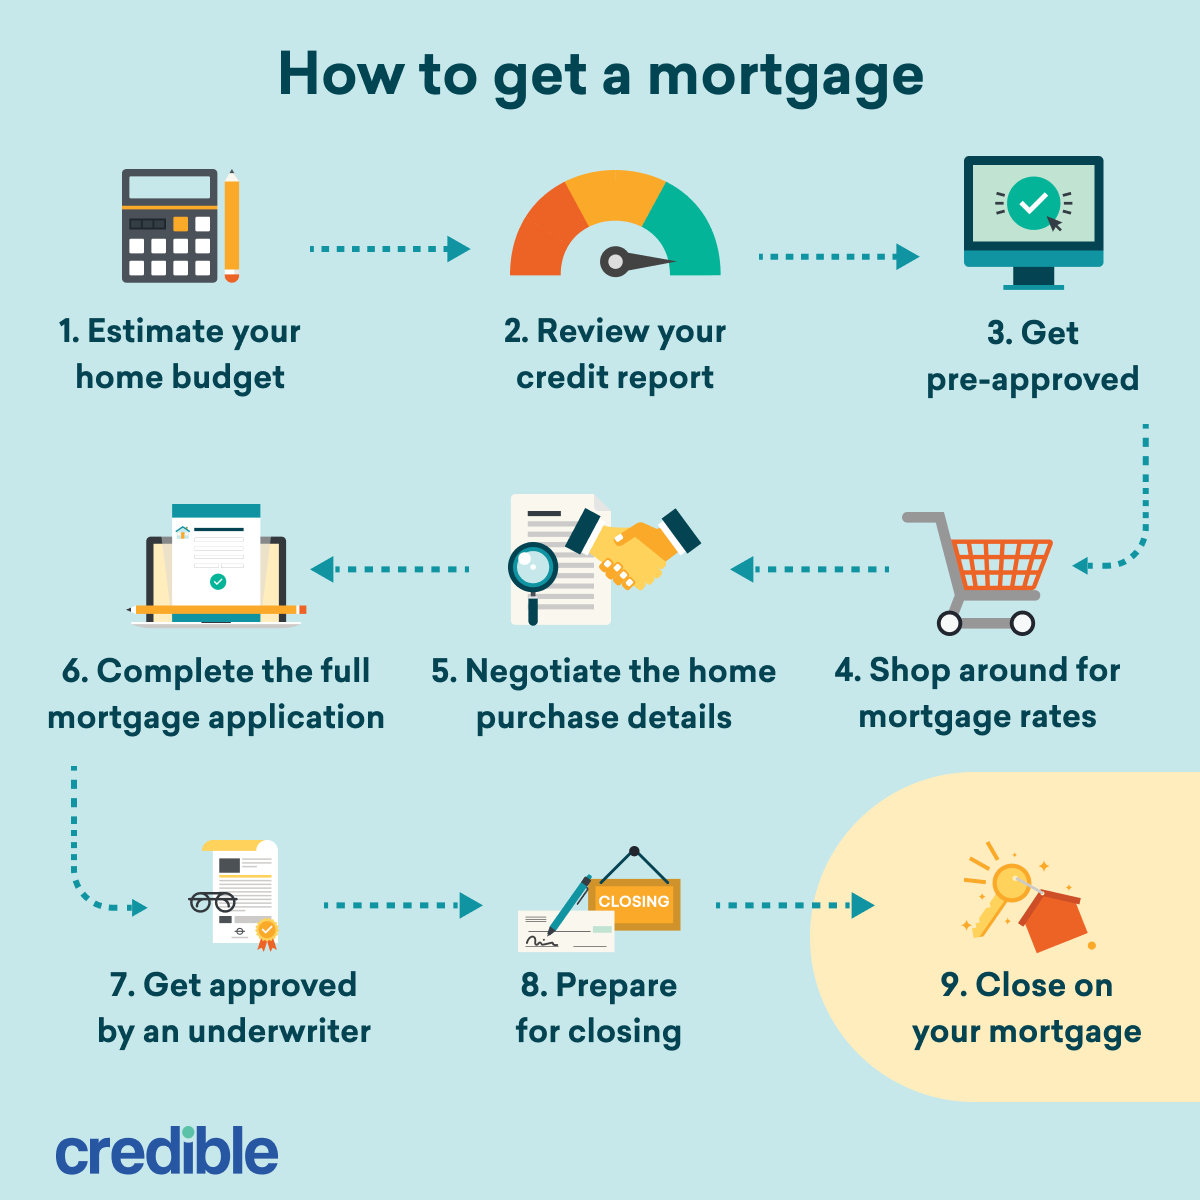 how to get a mortgage flowchart-square